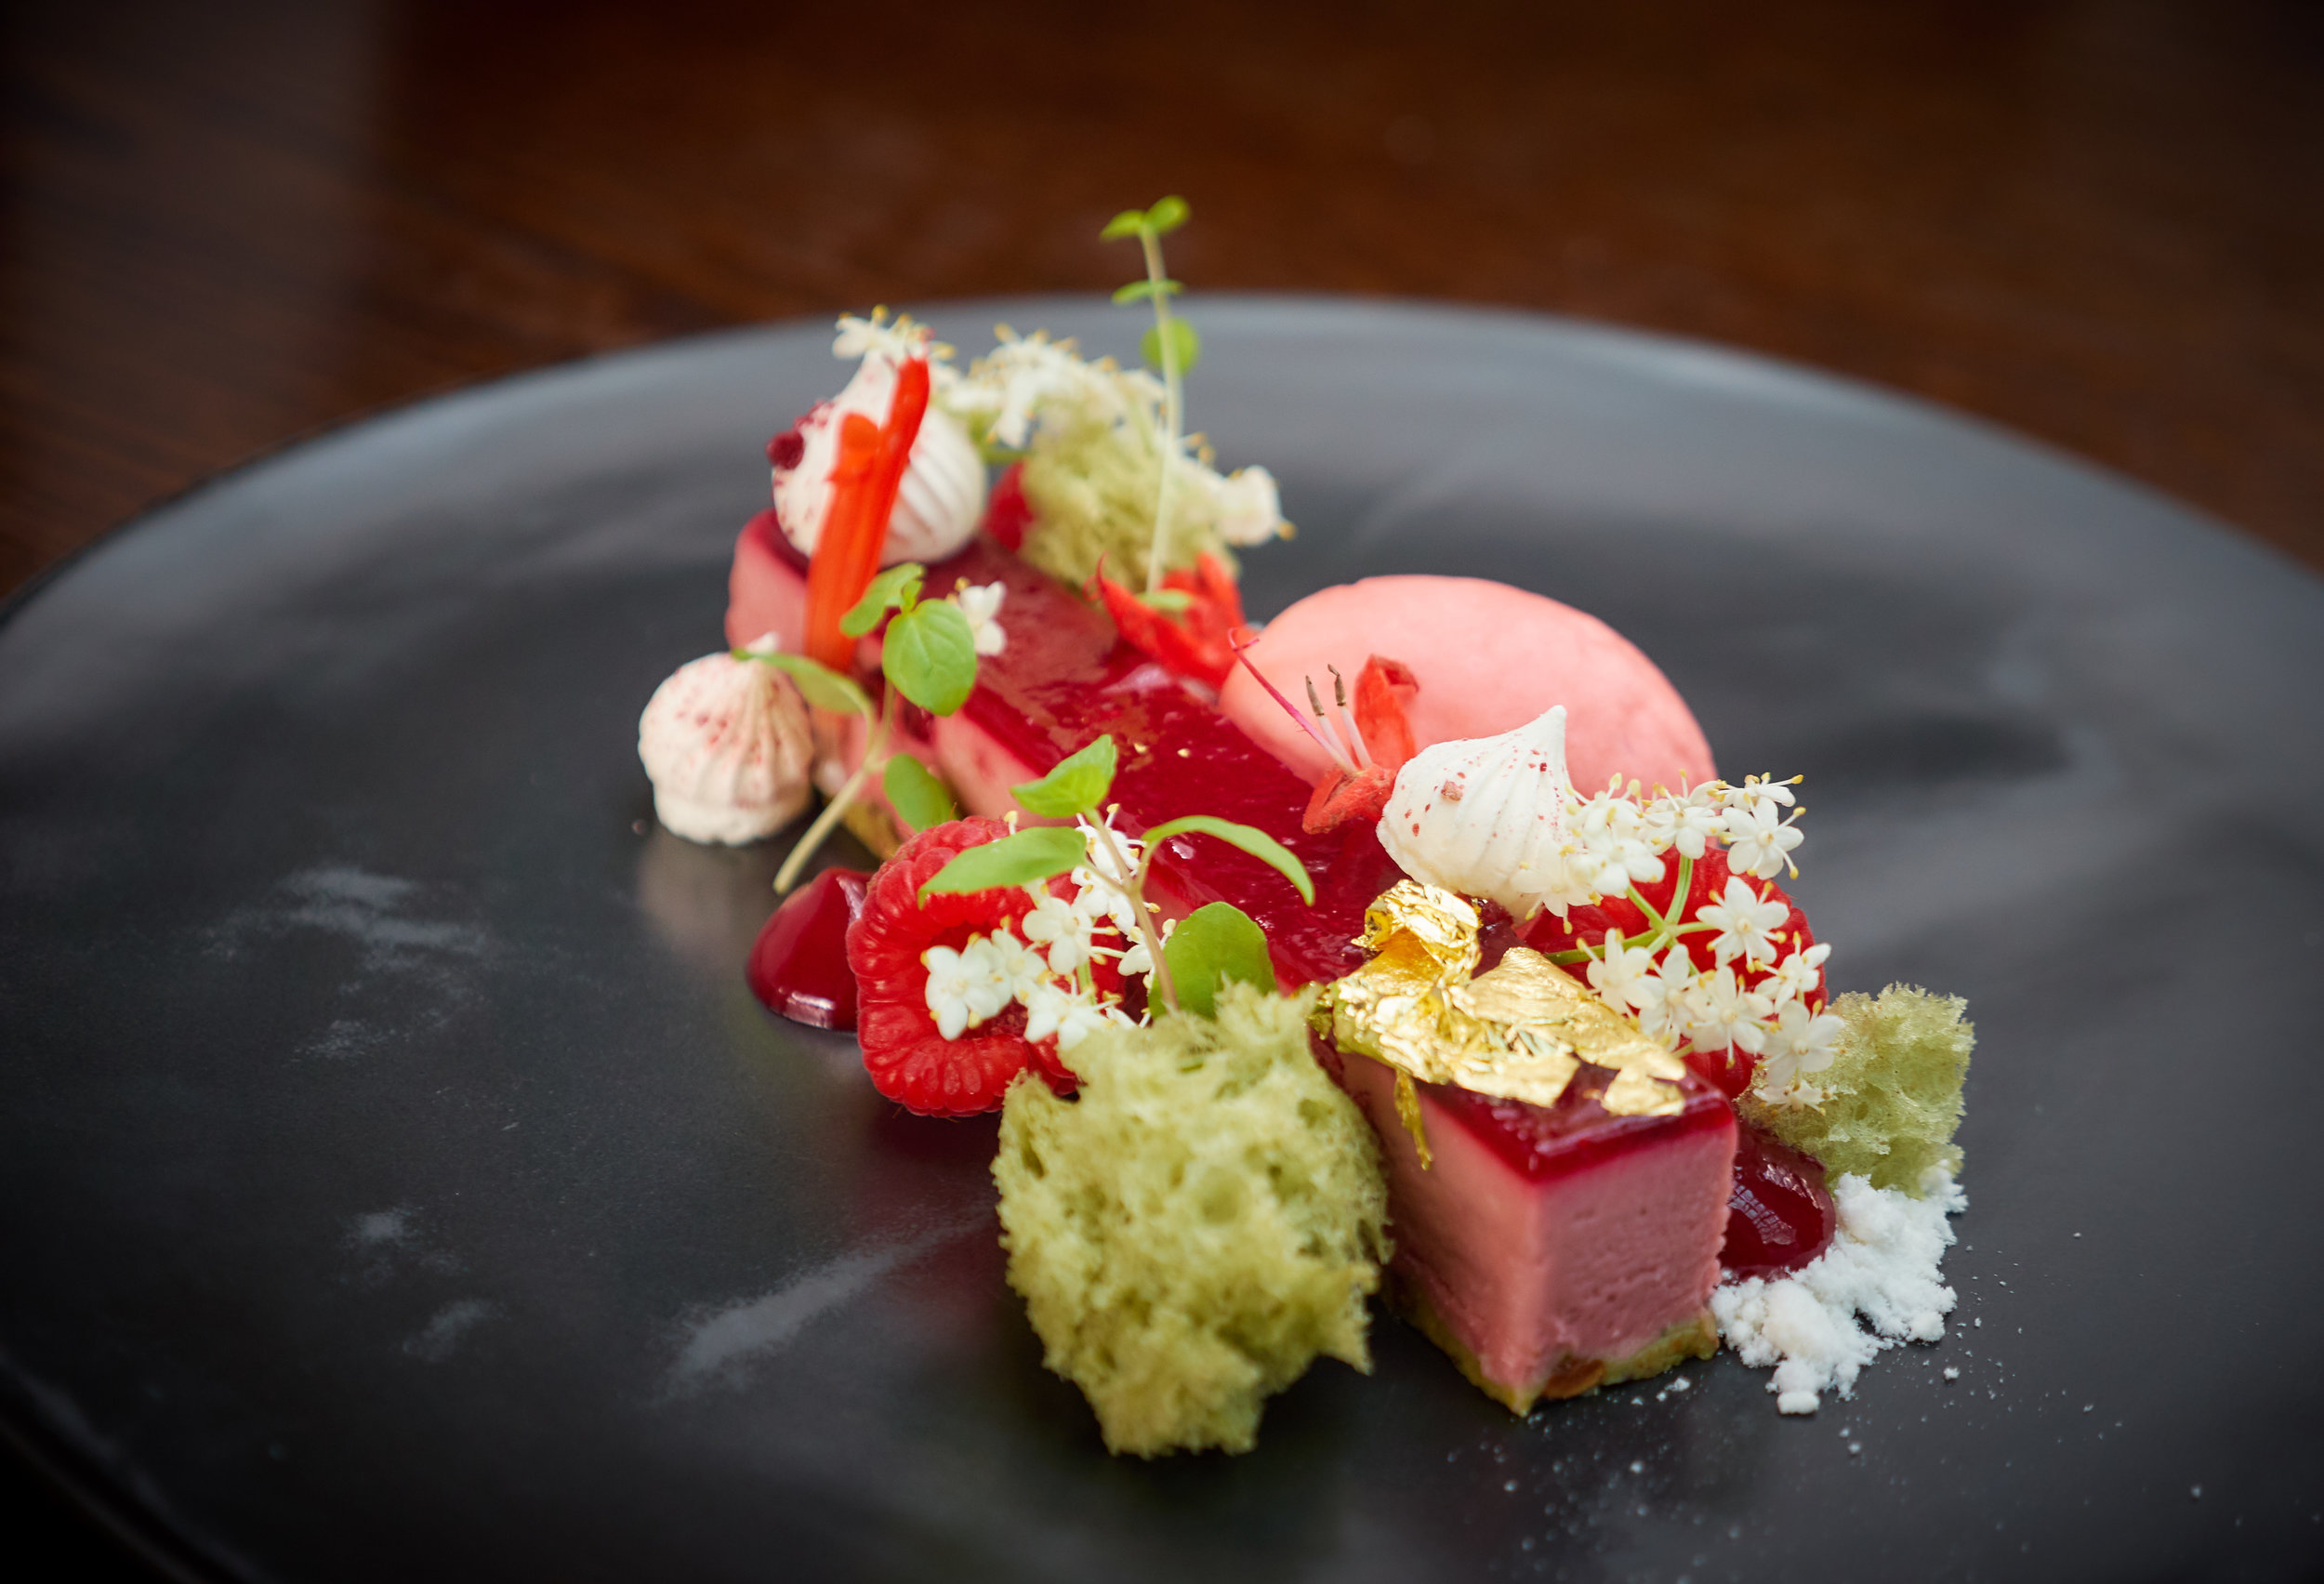 RASPBERRY DELICE, PISTACHIO, WHITE CHOCOLATE SNOW, MICRO MINT, FRUIT SALAD SAGE, ELDERFLOWER.